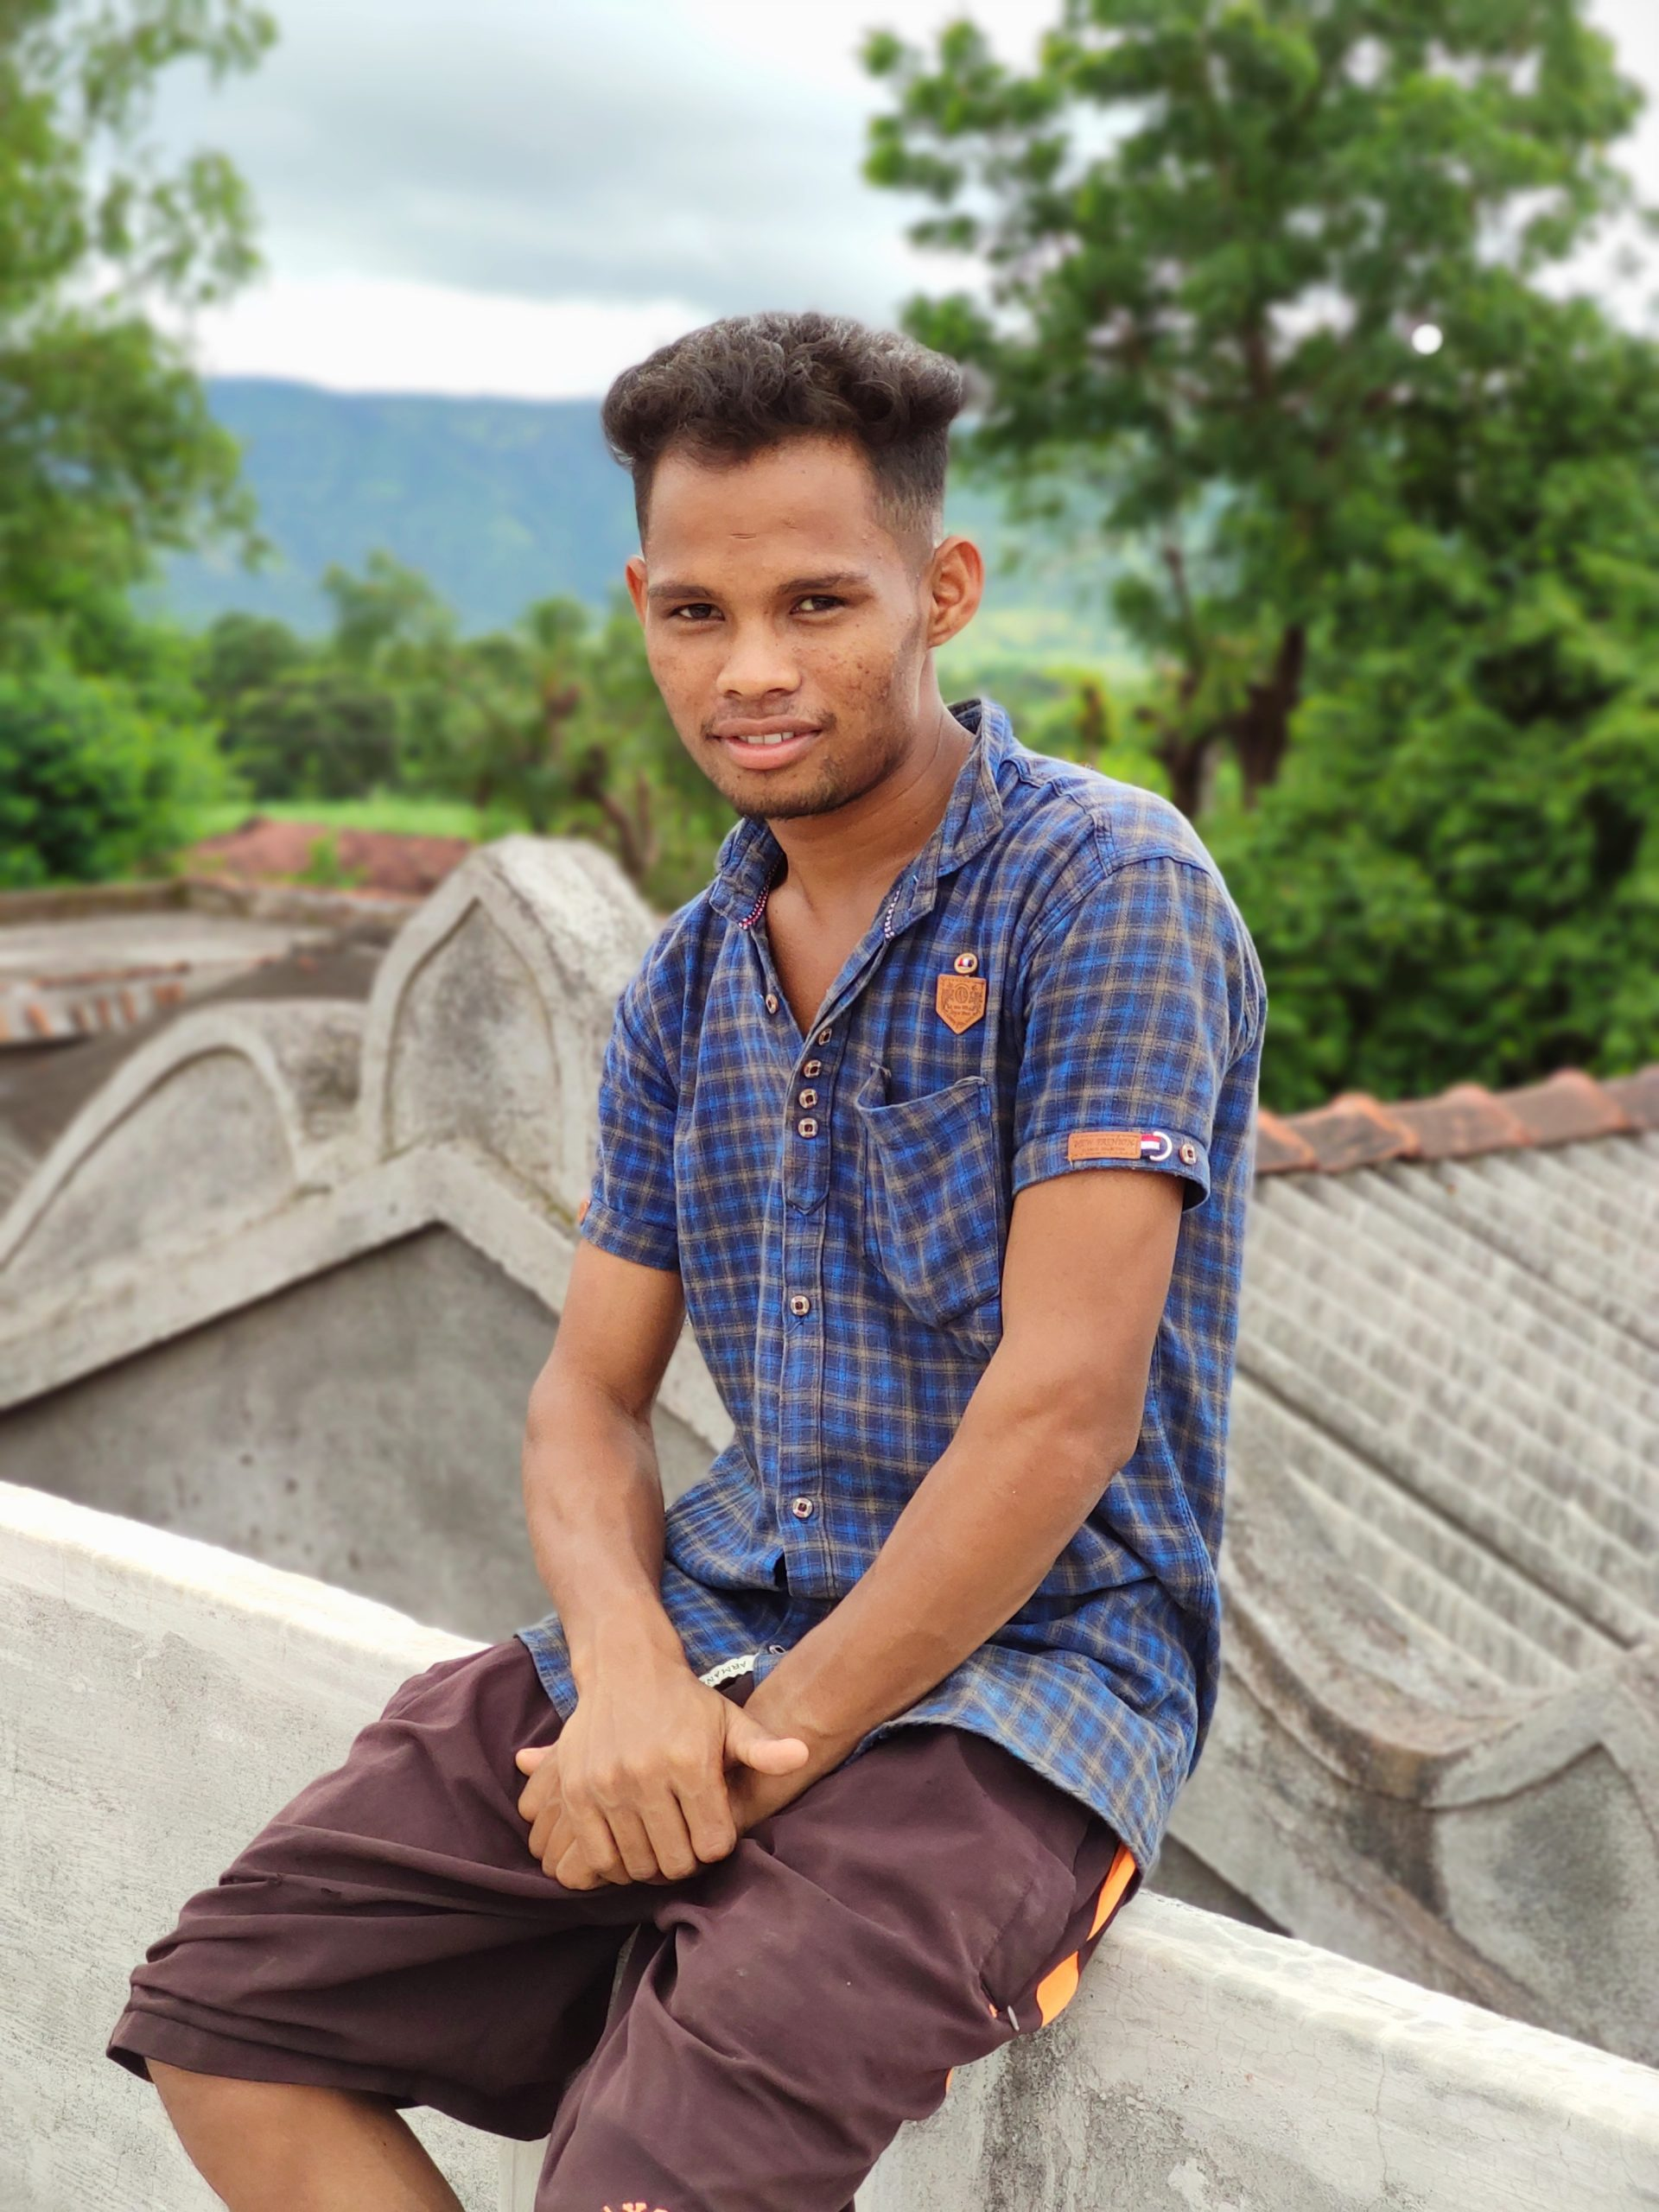 Boy sitting on house roof